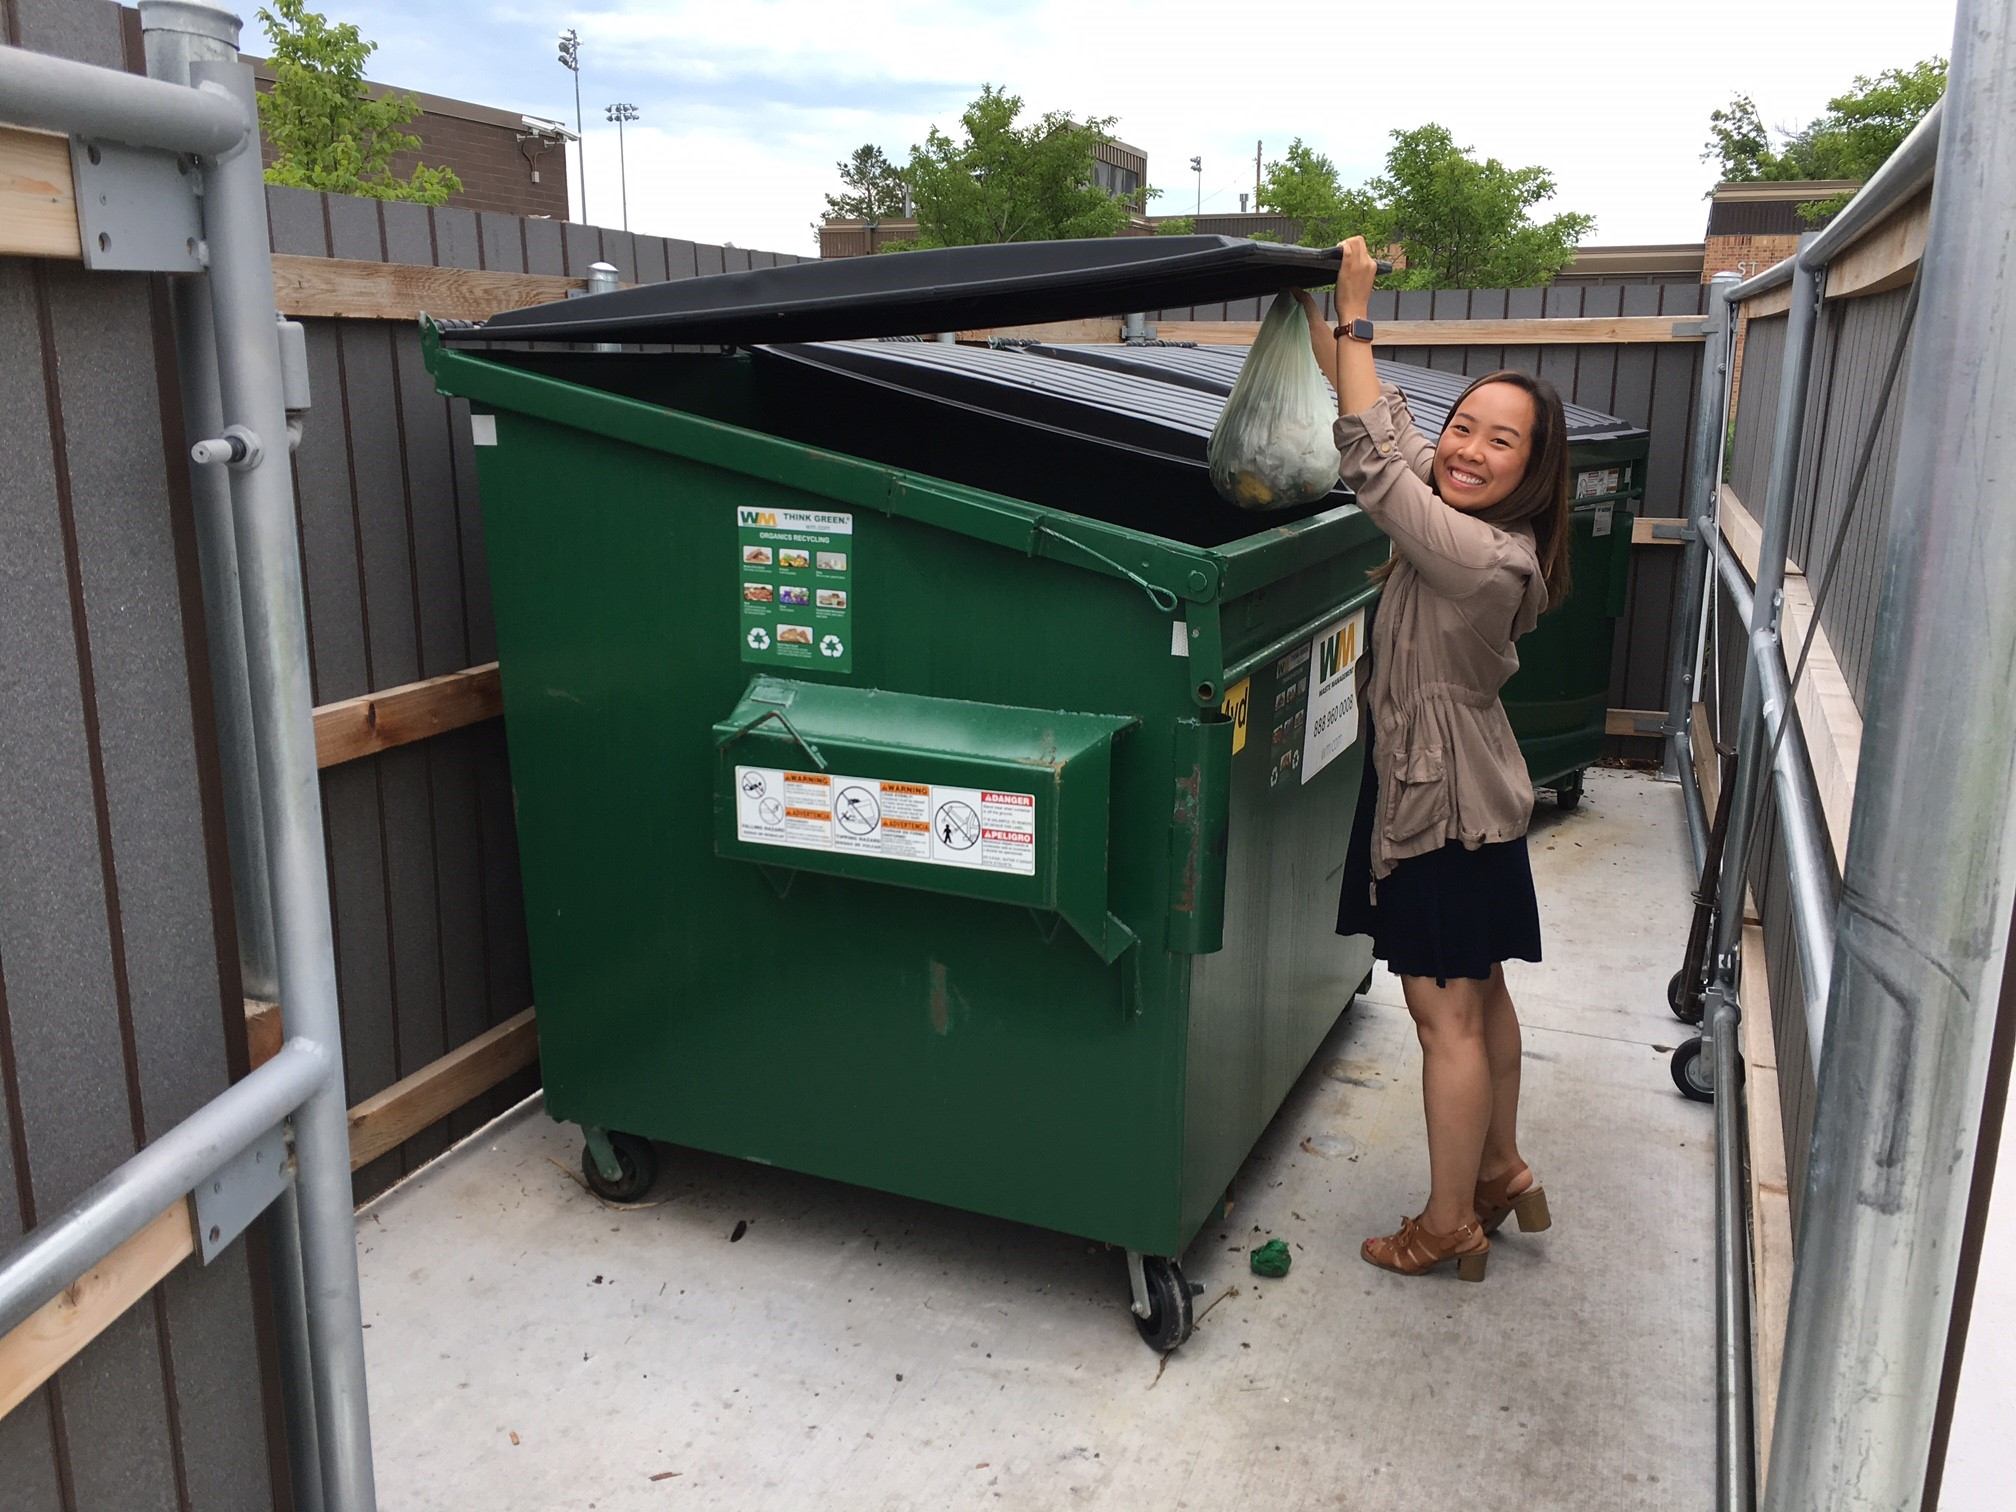 Food scraps collection (organics recycling) drop off